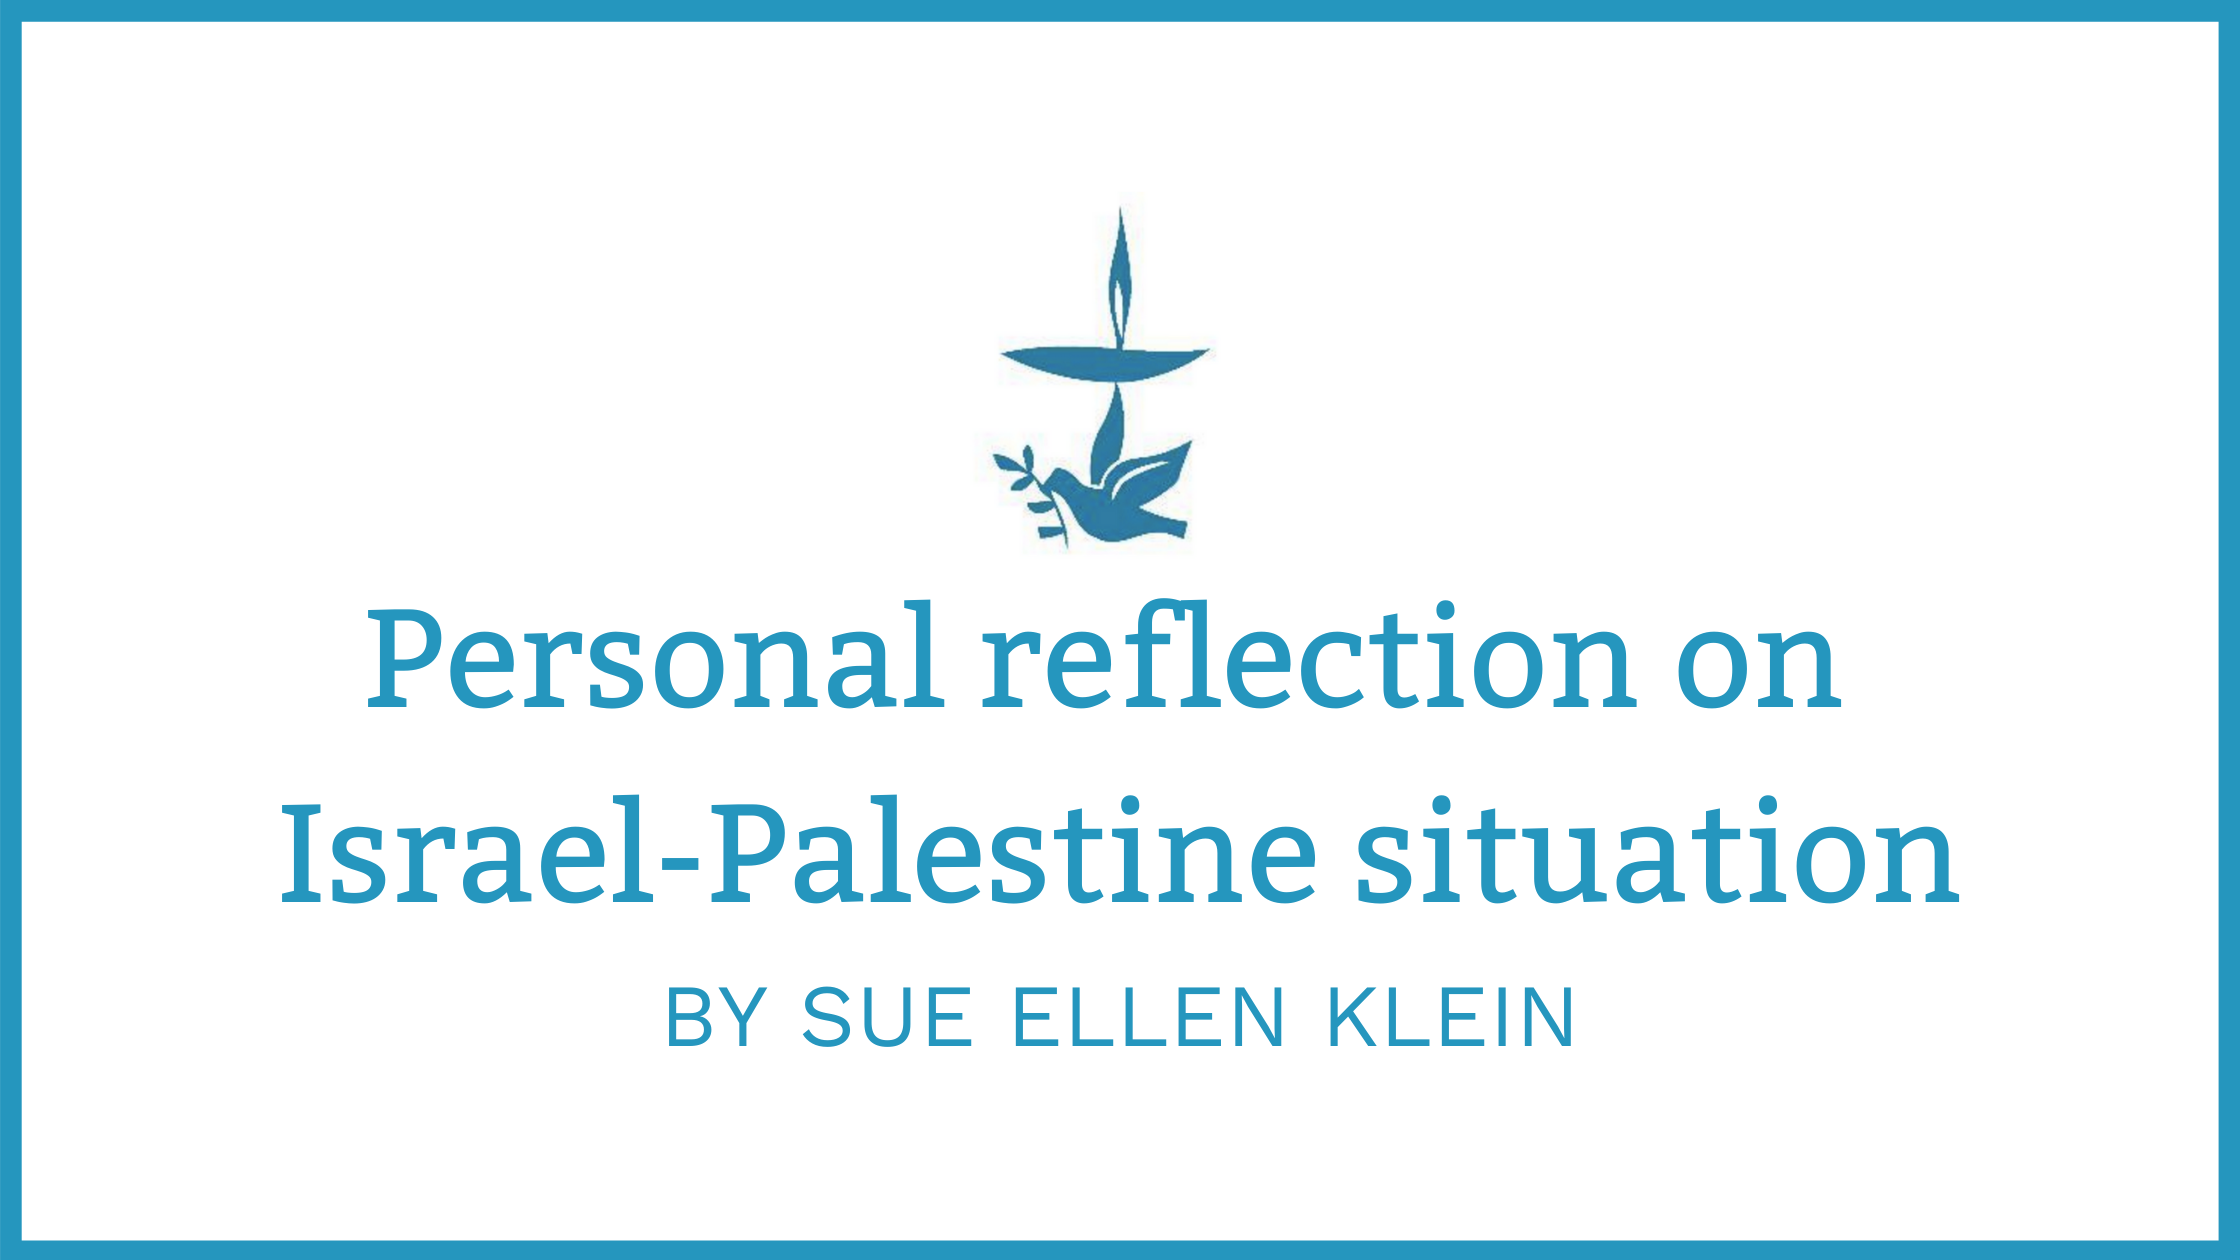 Partners for Peace: Personal reflection on Israel-Palestine situation